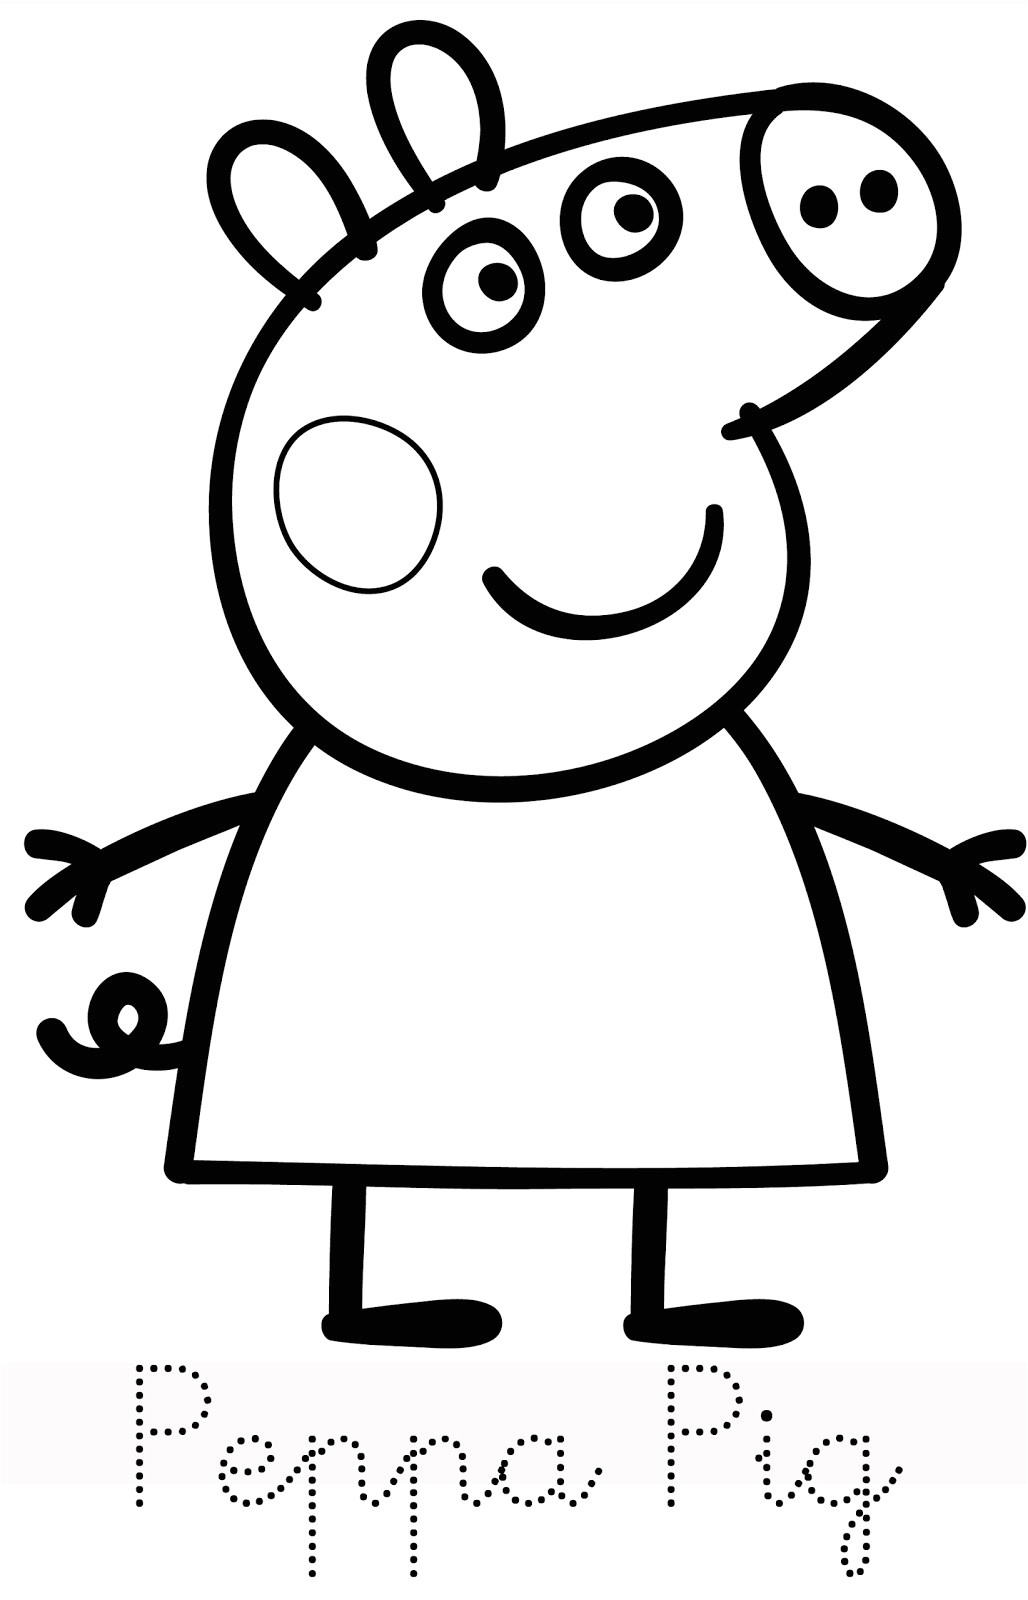 Peppa Pig Drawing Templates Baby Potatoes Family Of Peppa Pig